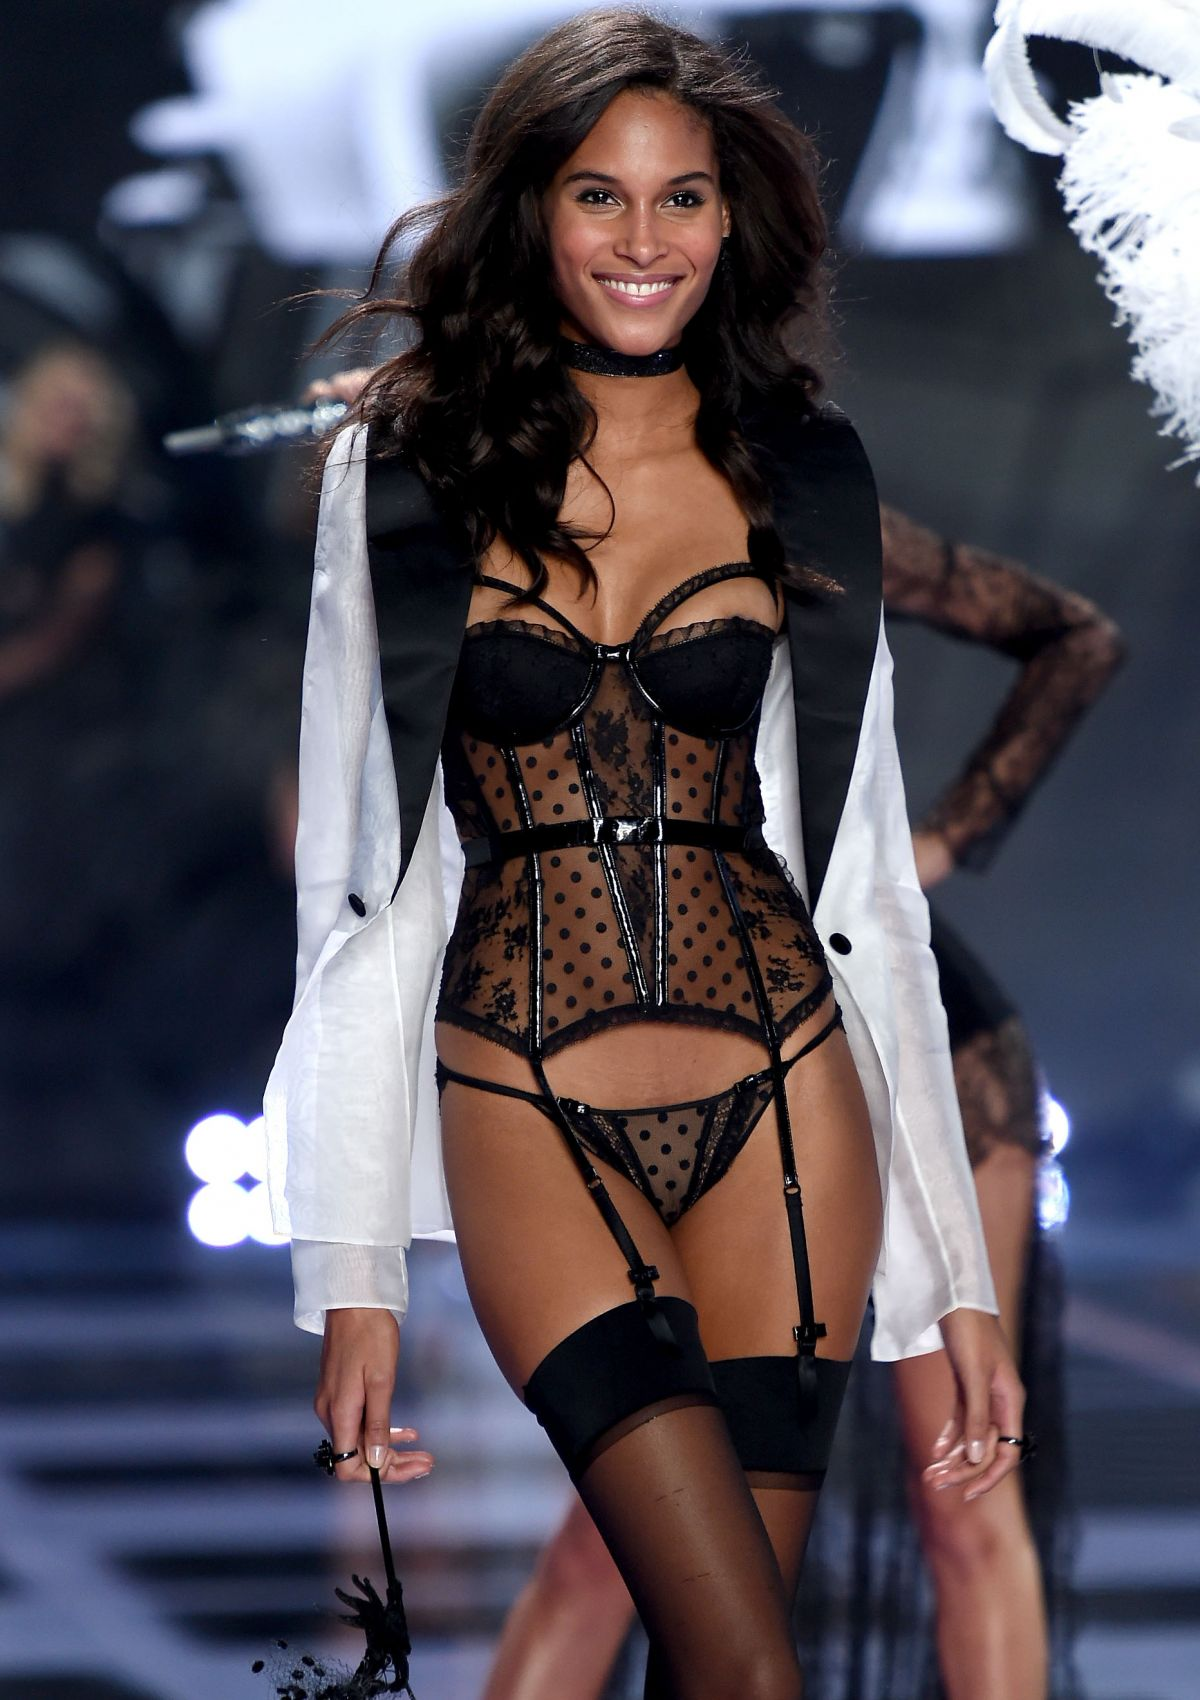 personnage de jovany 17/03/17 trouvé par Martine - Page 5 Cindy-bruna-at-2014-victoria-s-secret-show-in-london_1